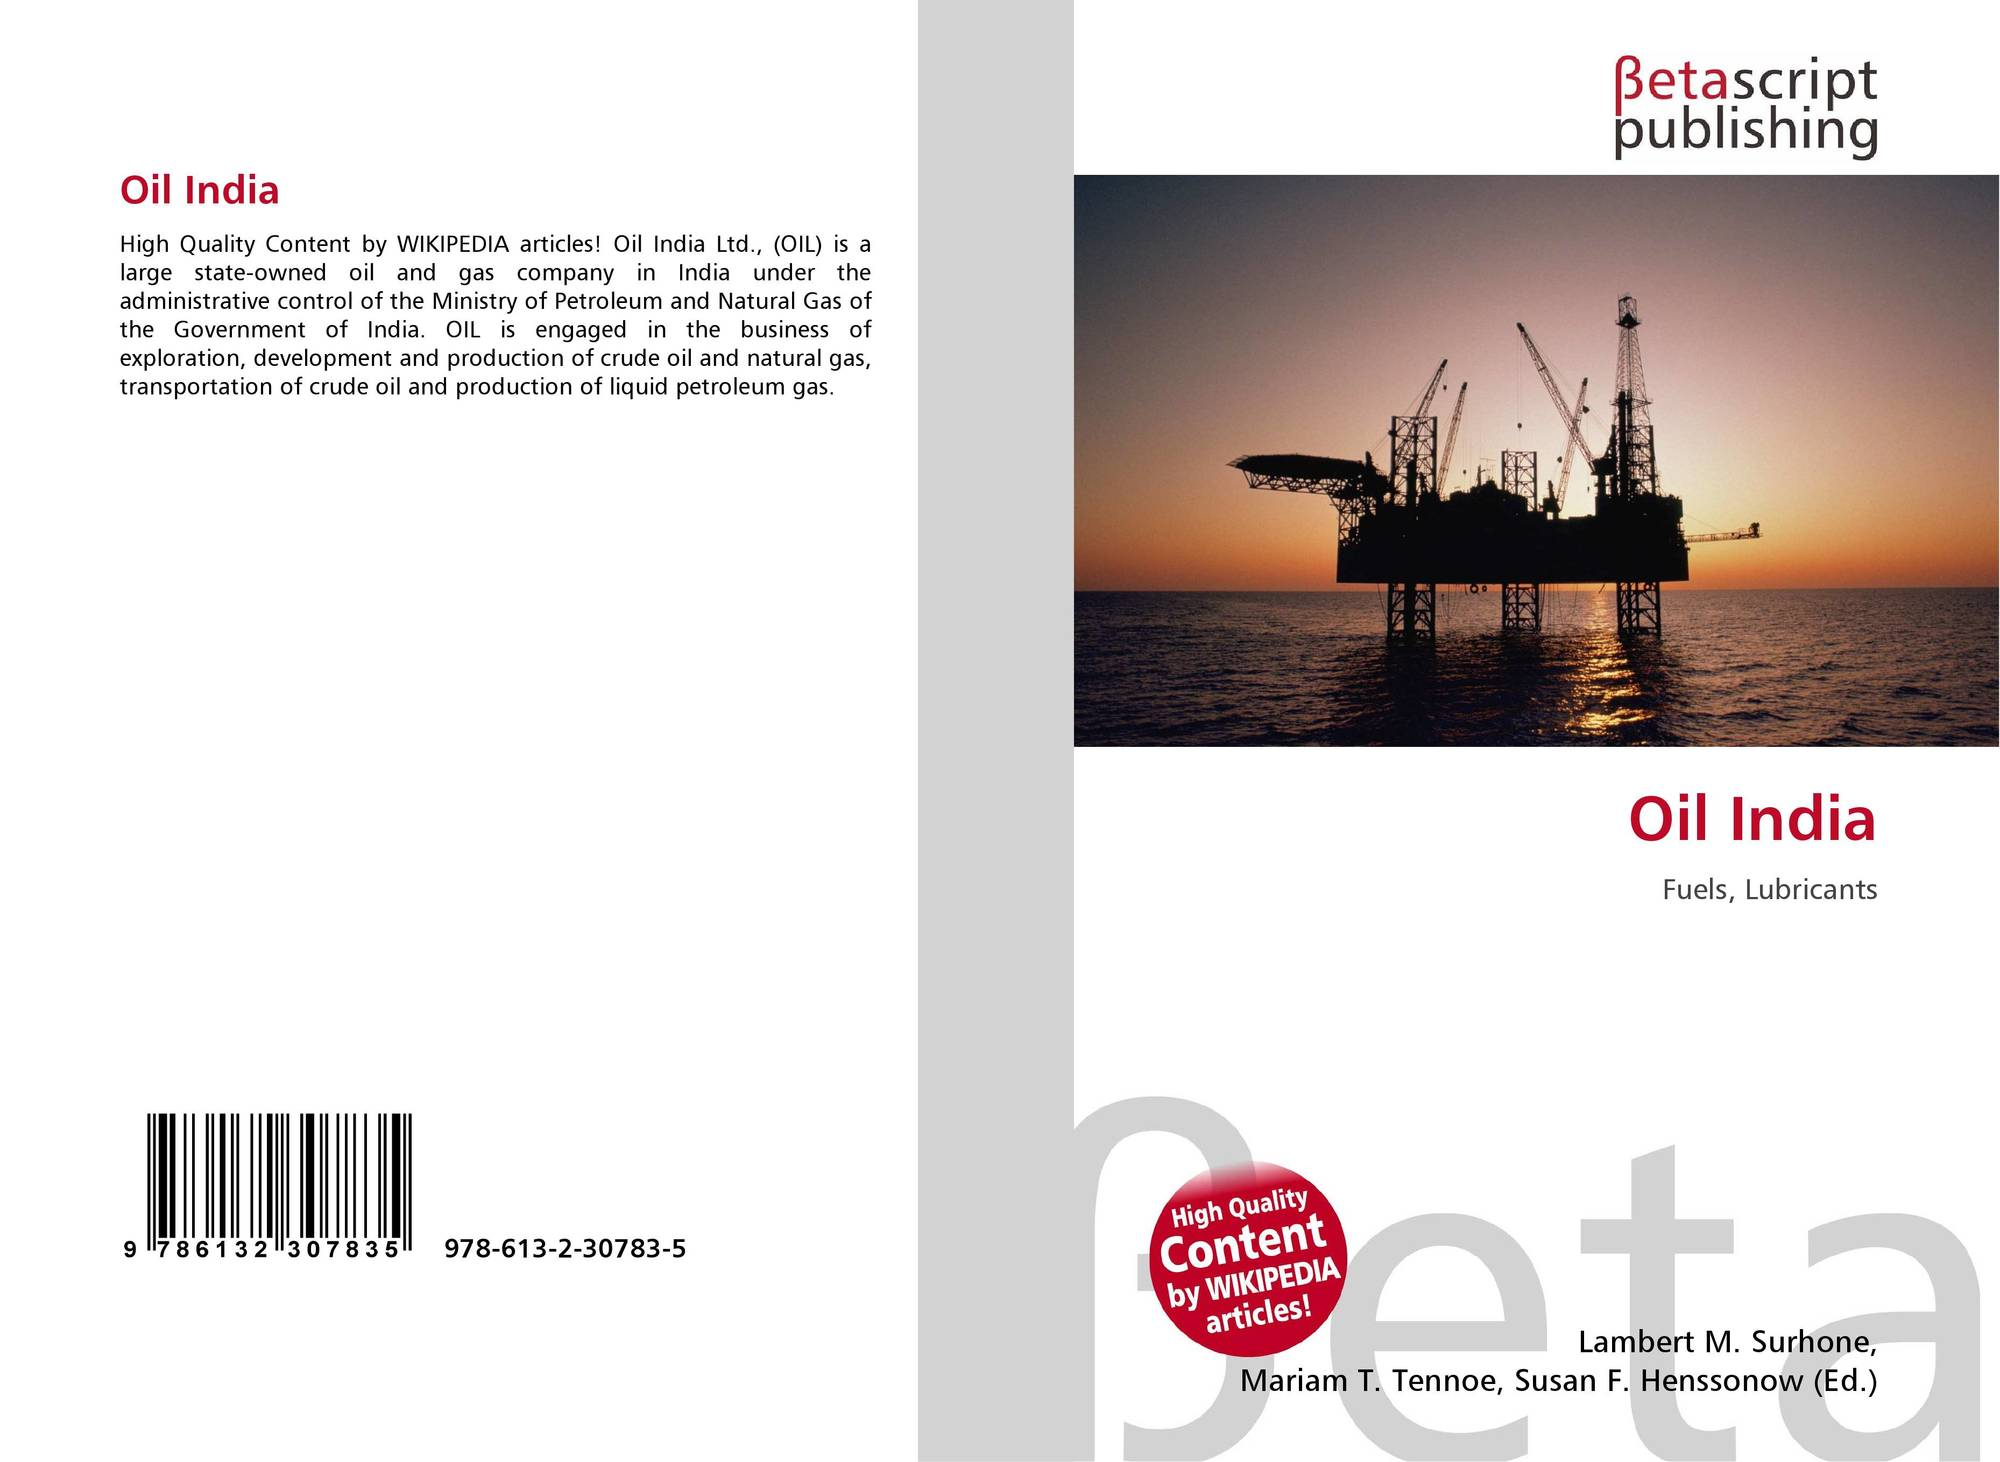 an analysis of petroleum industry in business Issue 5/6 covers the oil and gas industry (business reference an analysis of long-term international oil market developments and provides insight into the.